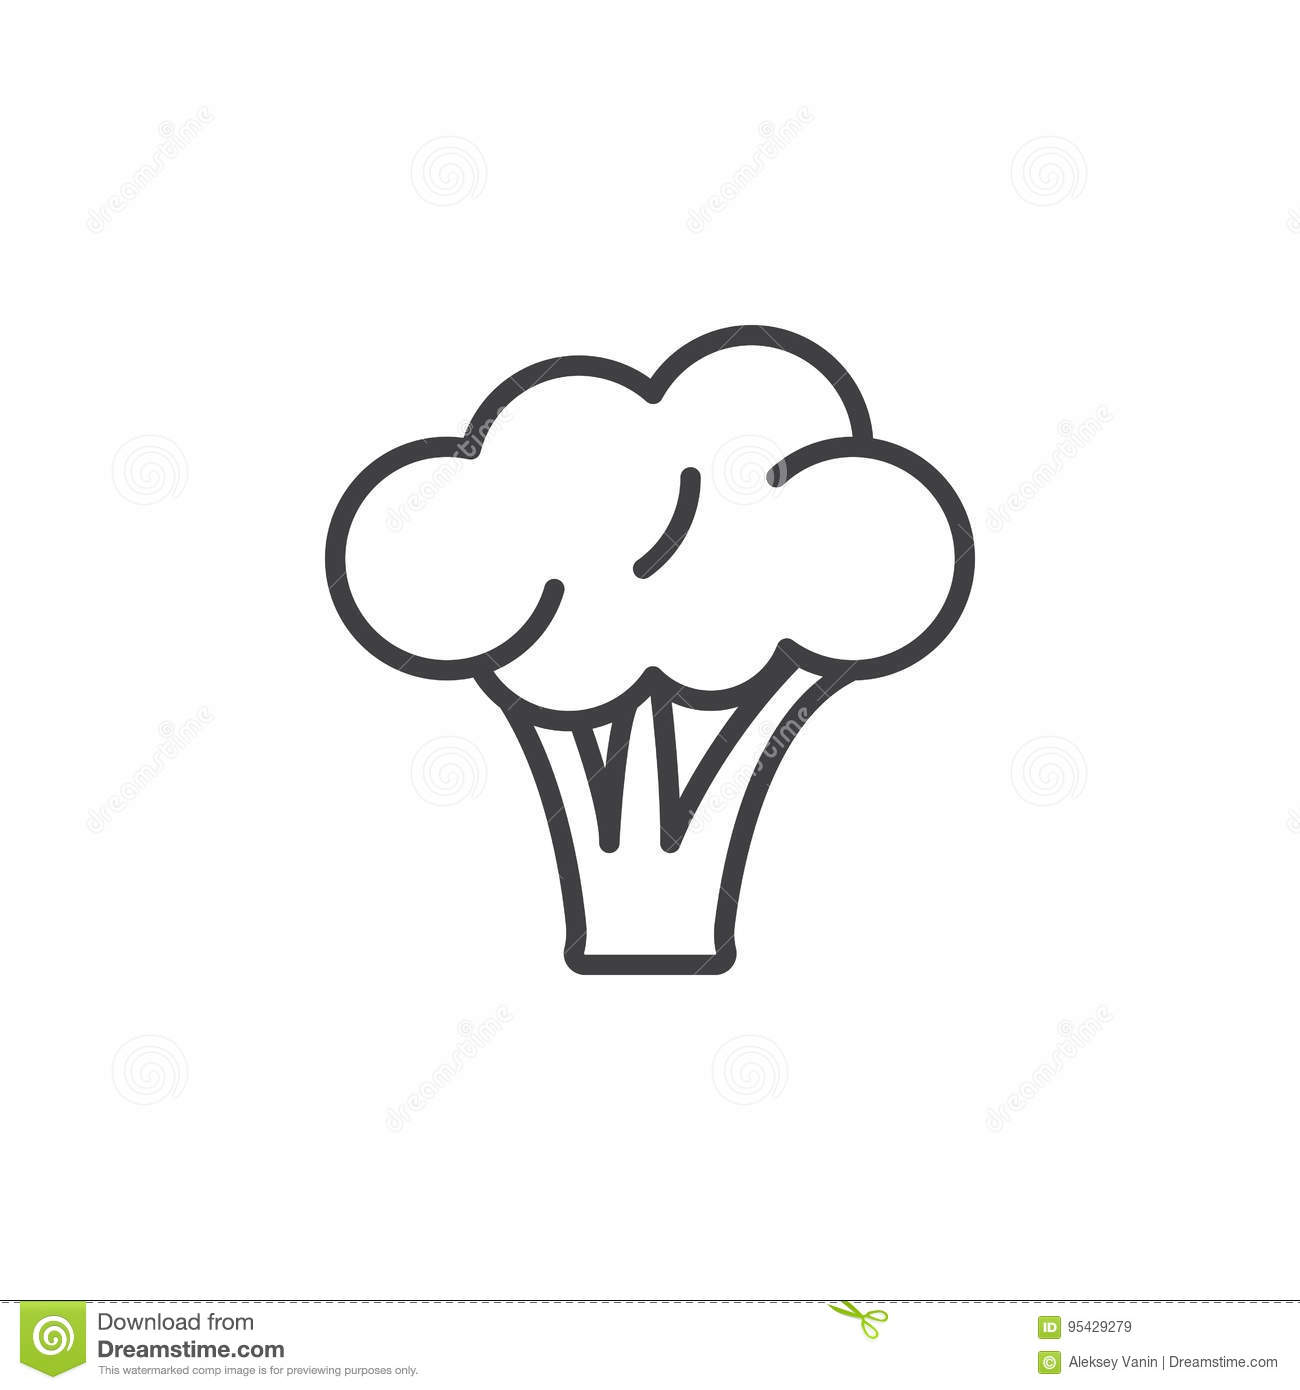 broccoli line icon outline vector sign linear pictogram isolated on white stock vector illustration of cabbage ingredient 95429279 dreamstime com